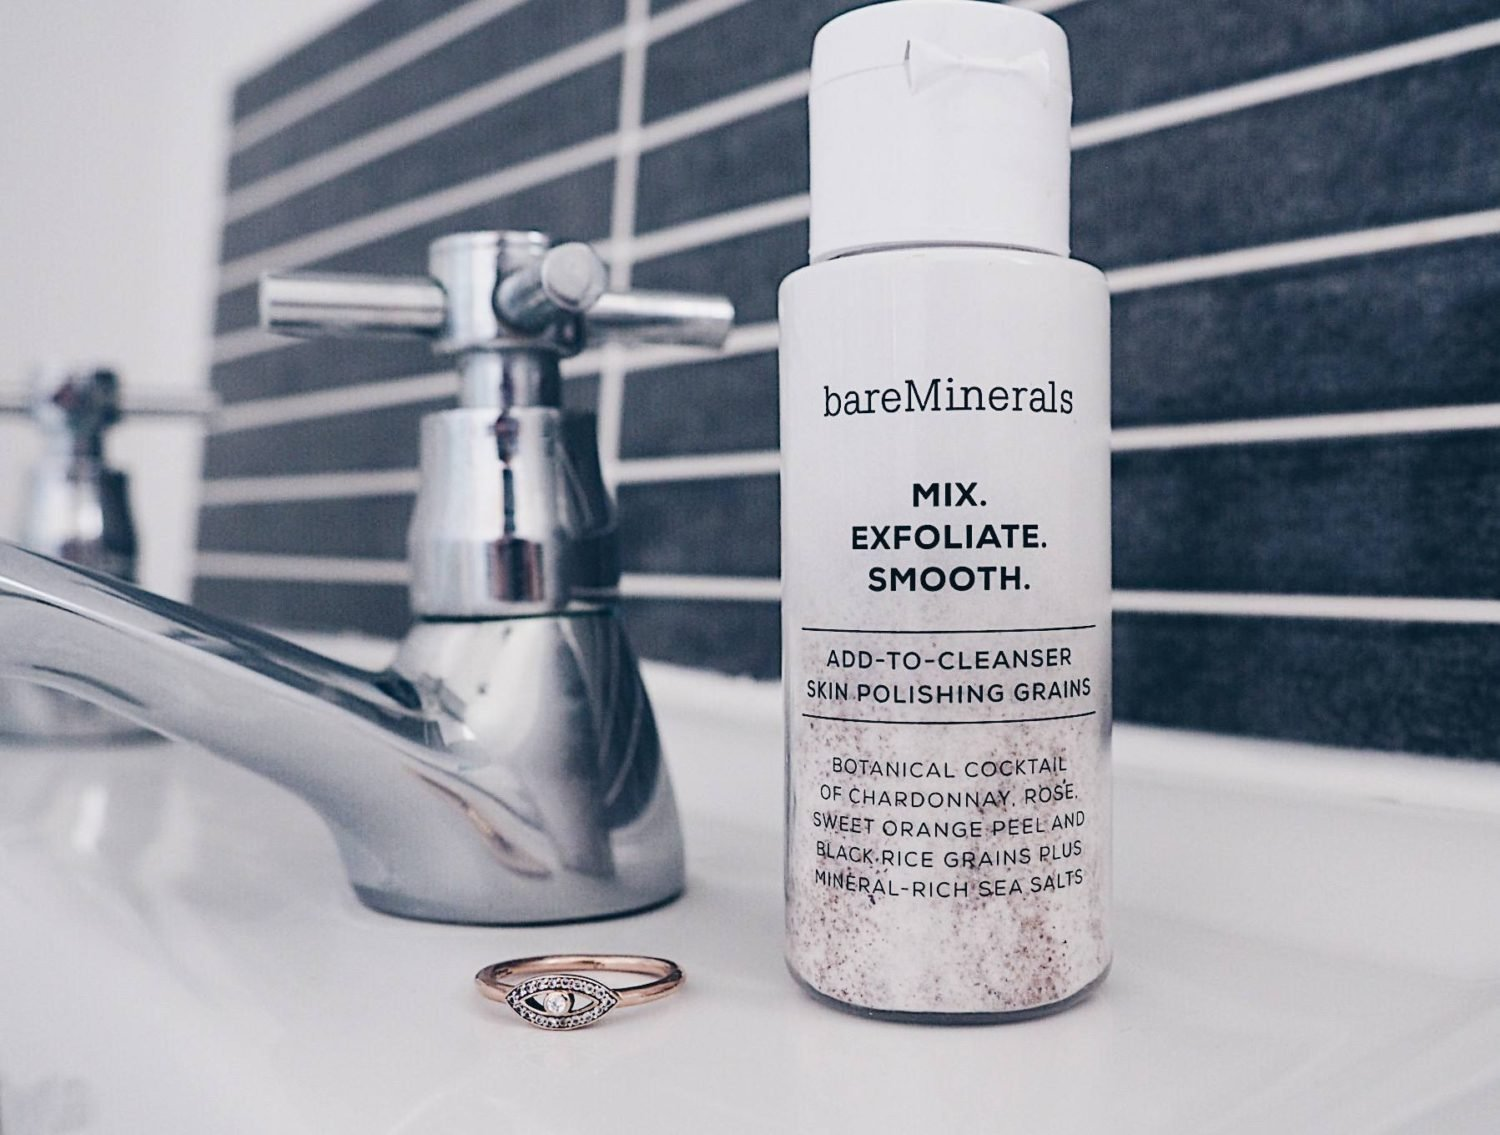 BareMinerals mix exfoliate smooth review